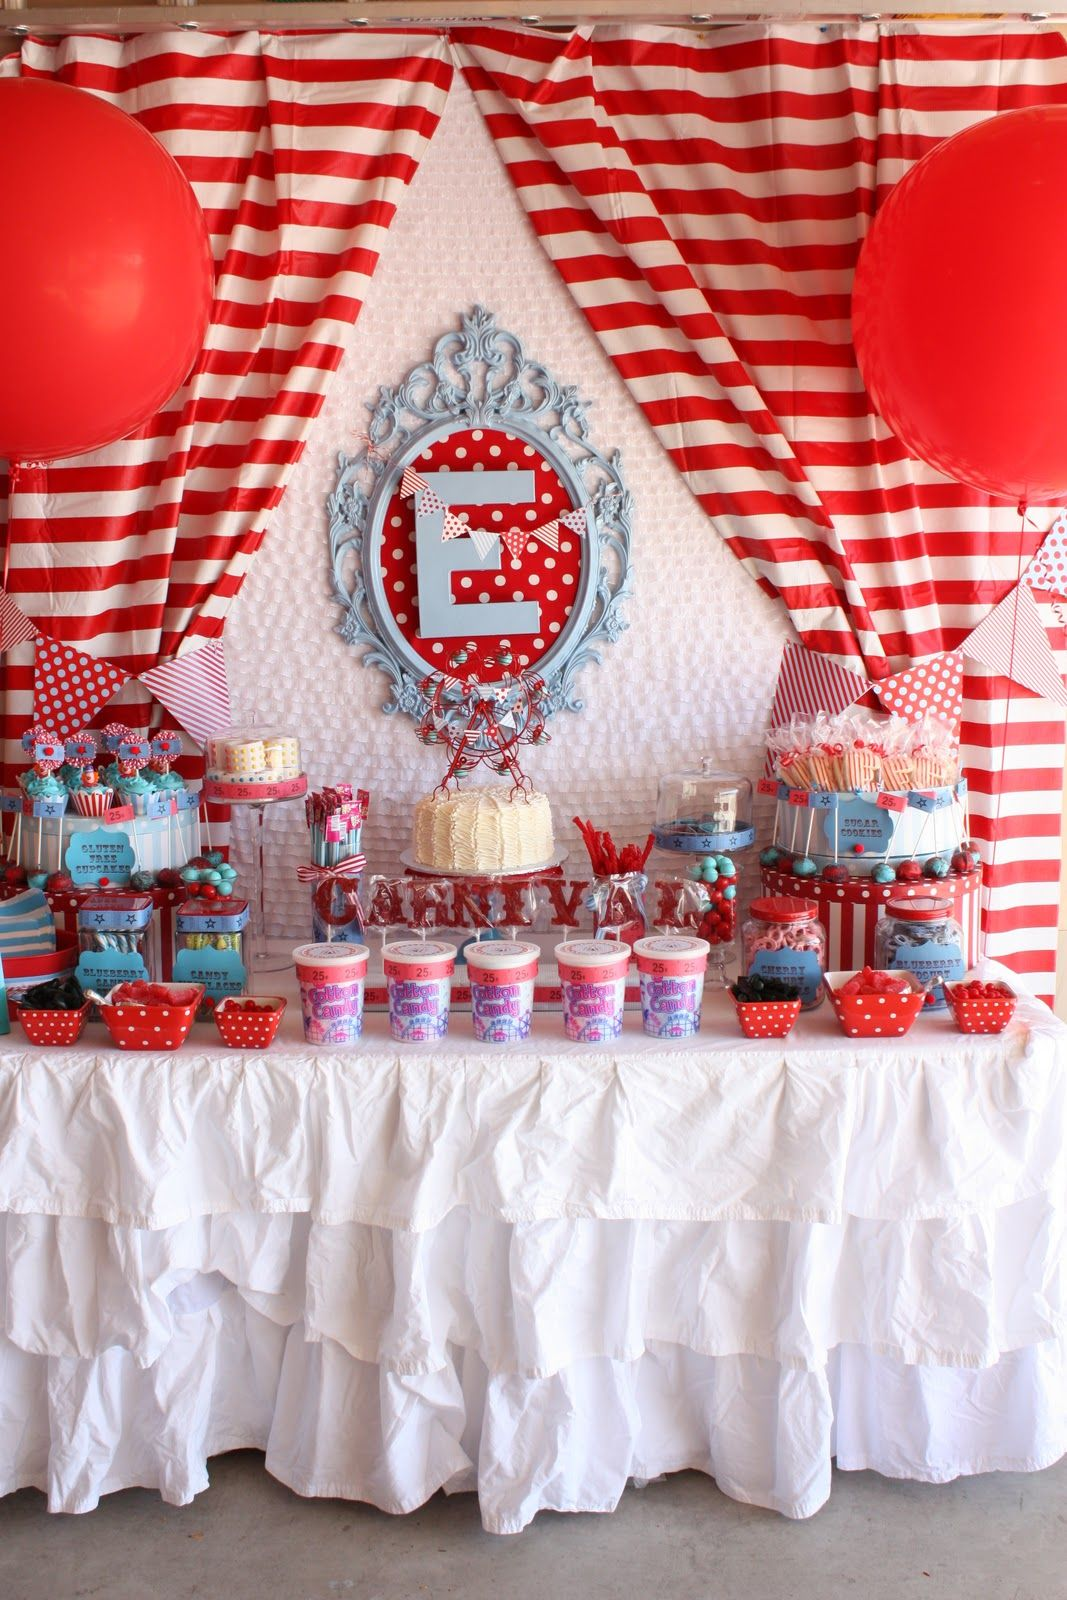 carnival theme candy & cake station